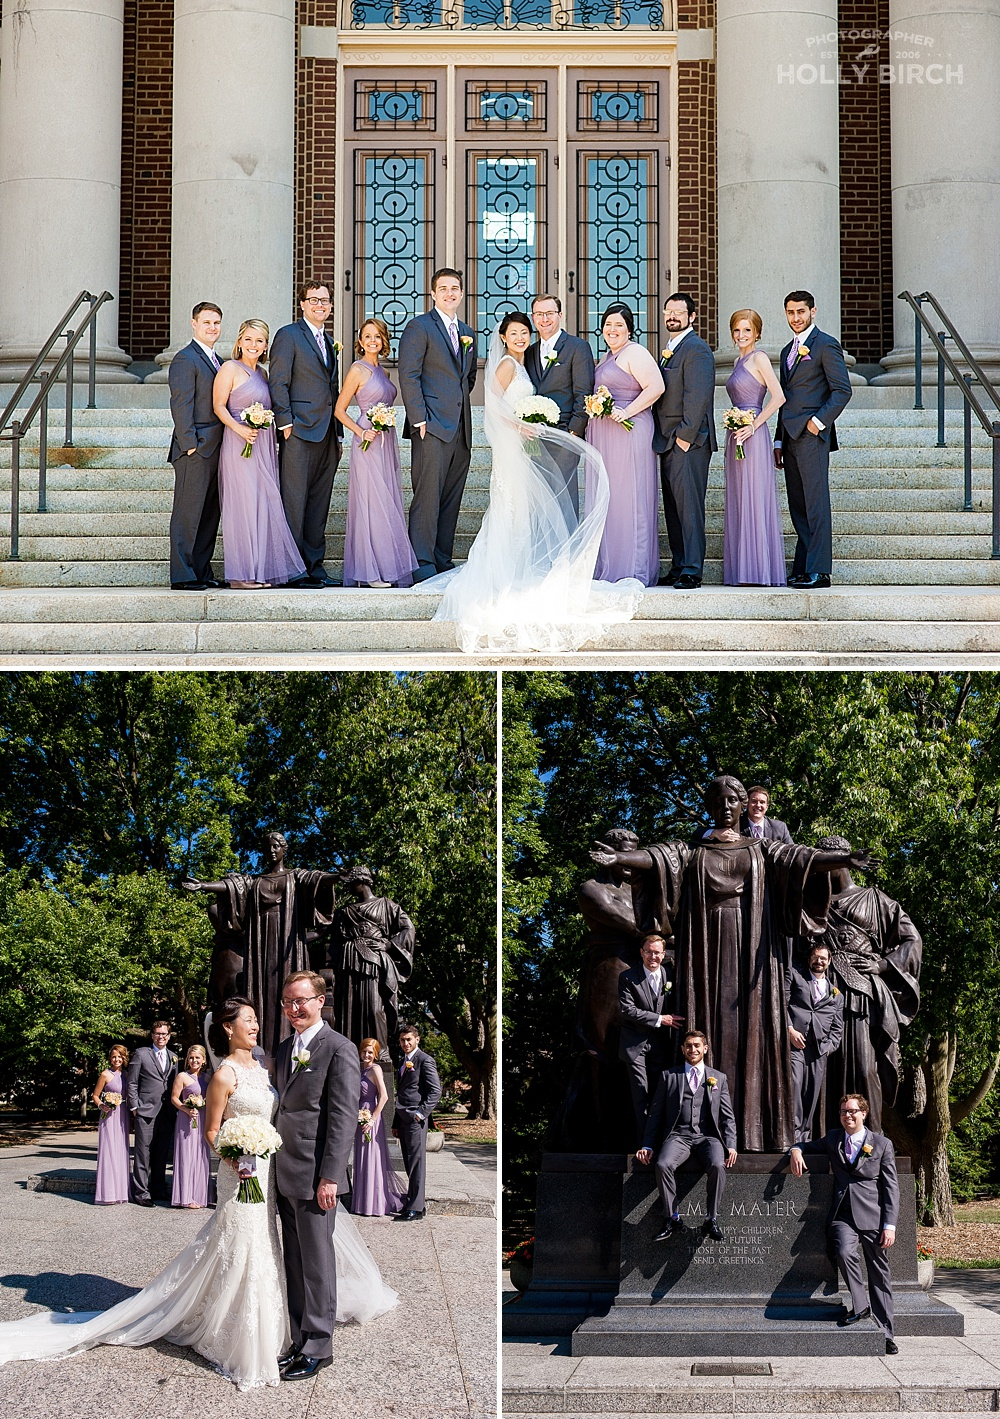 lavender and gray wedding party photos on U of I campus